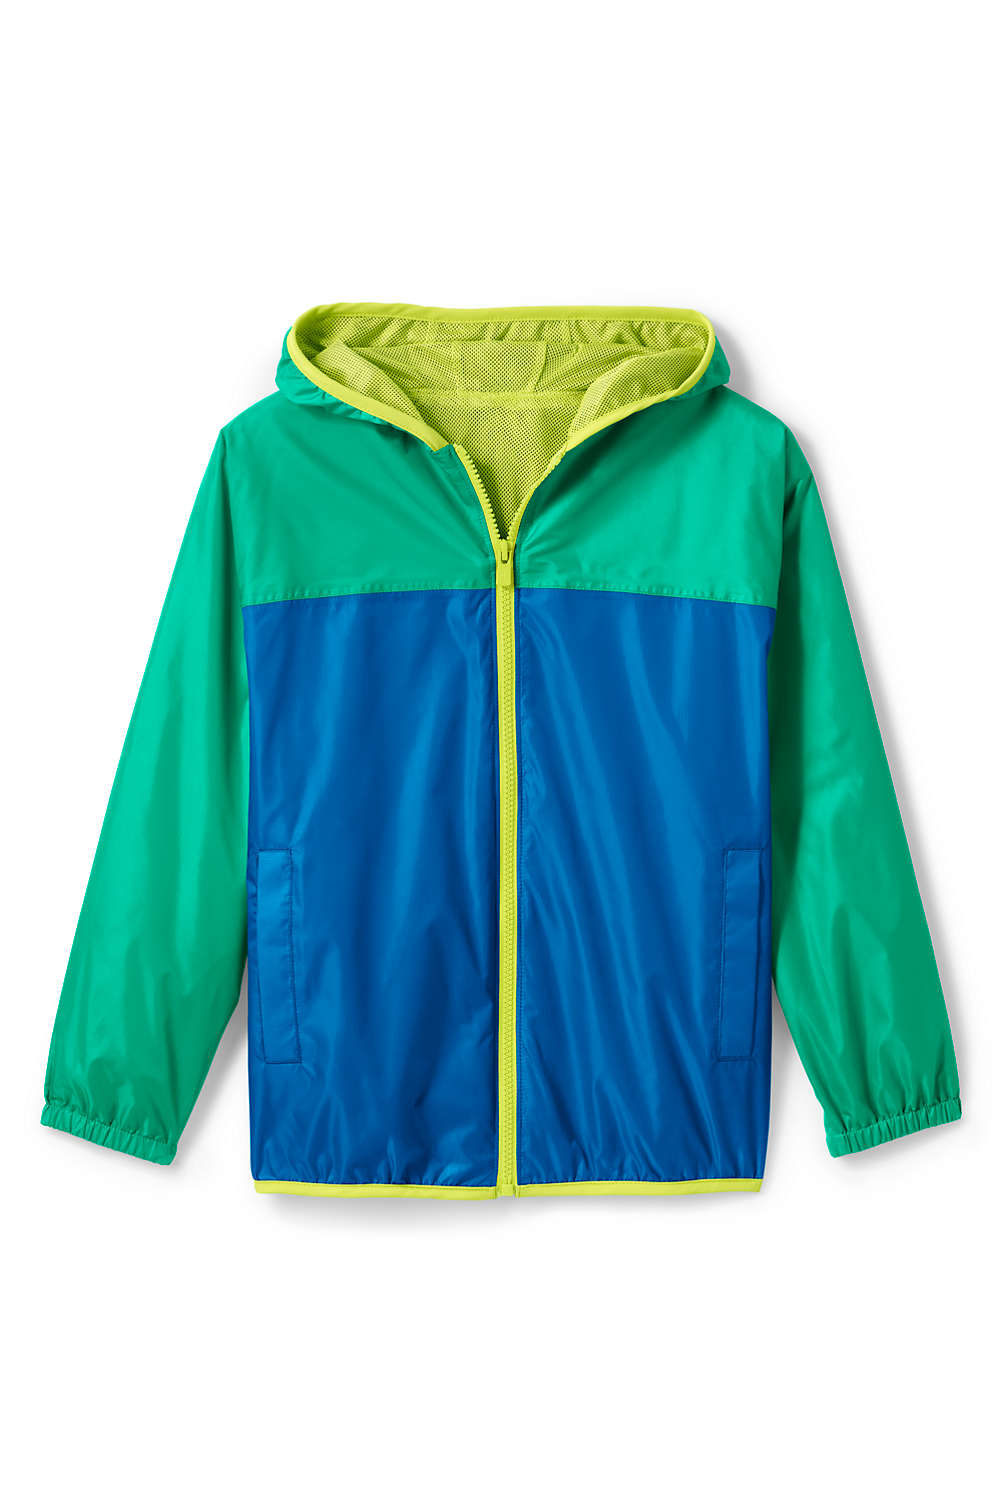 b4c3caefa291 Kids Waterproof Rain Jacket from Lands  End